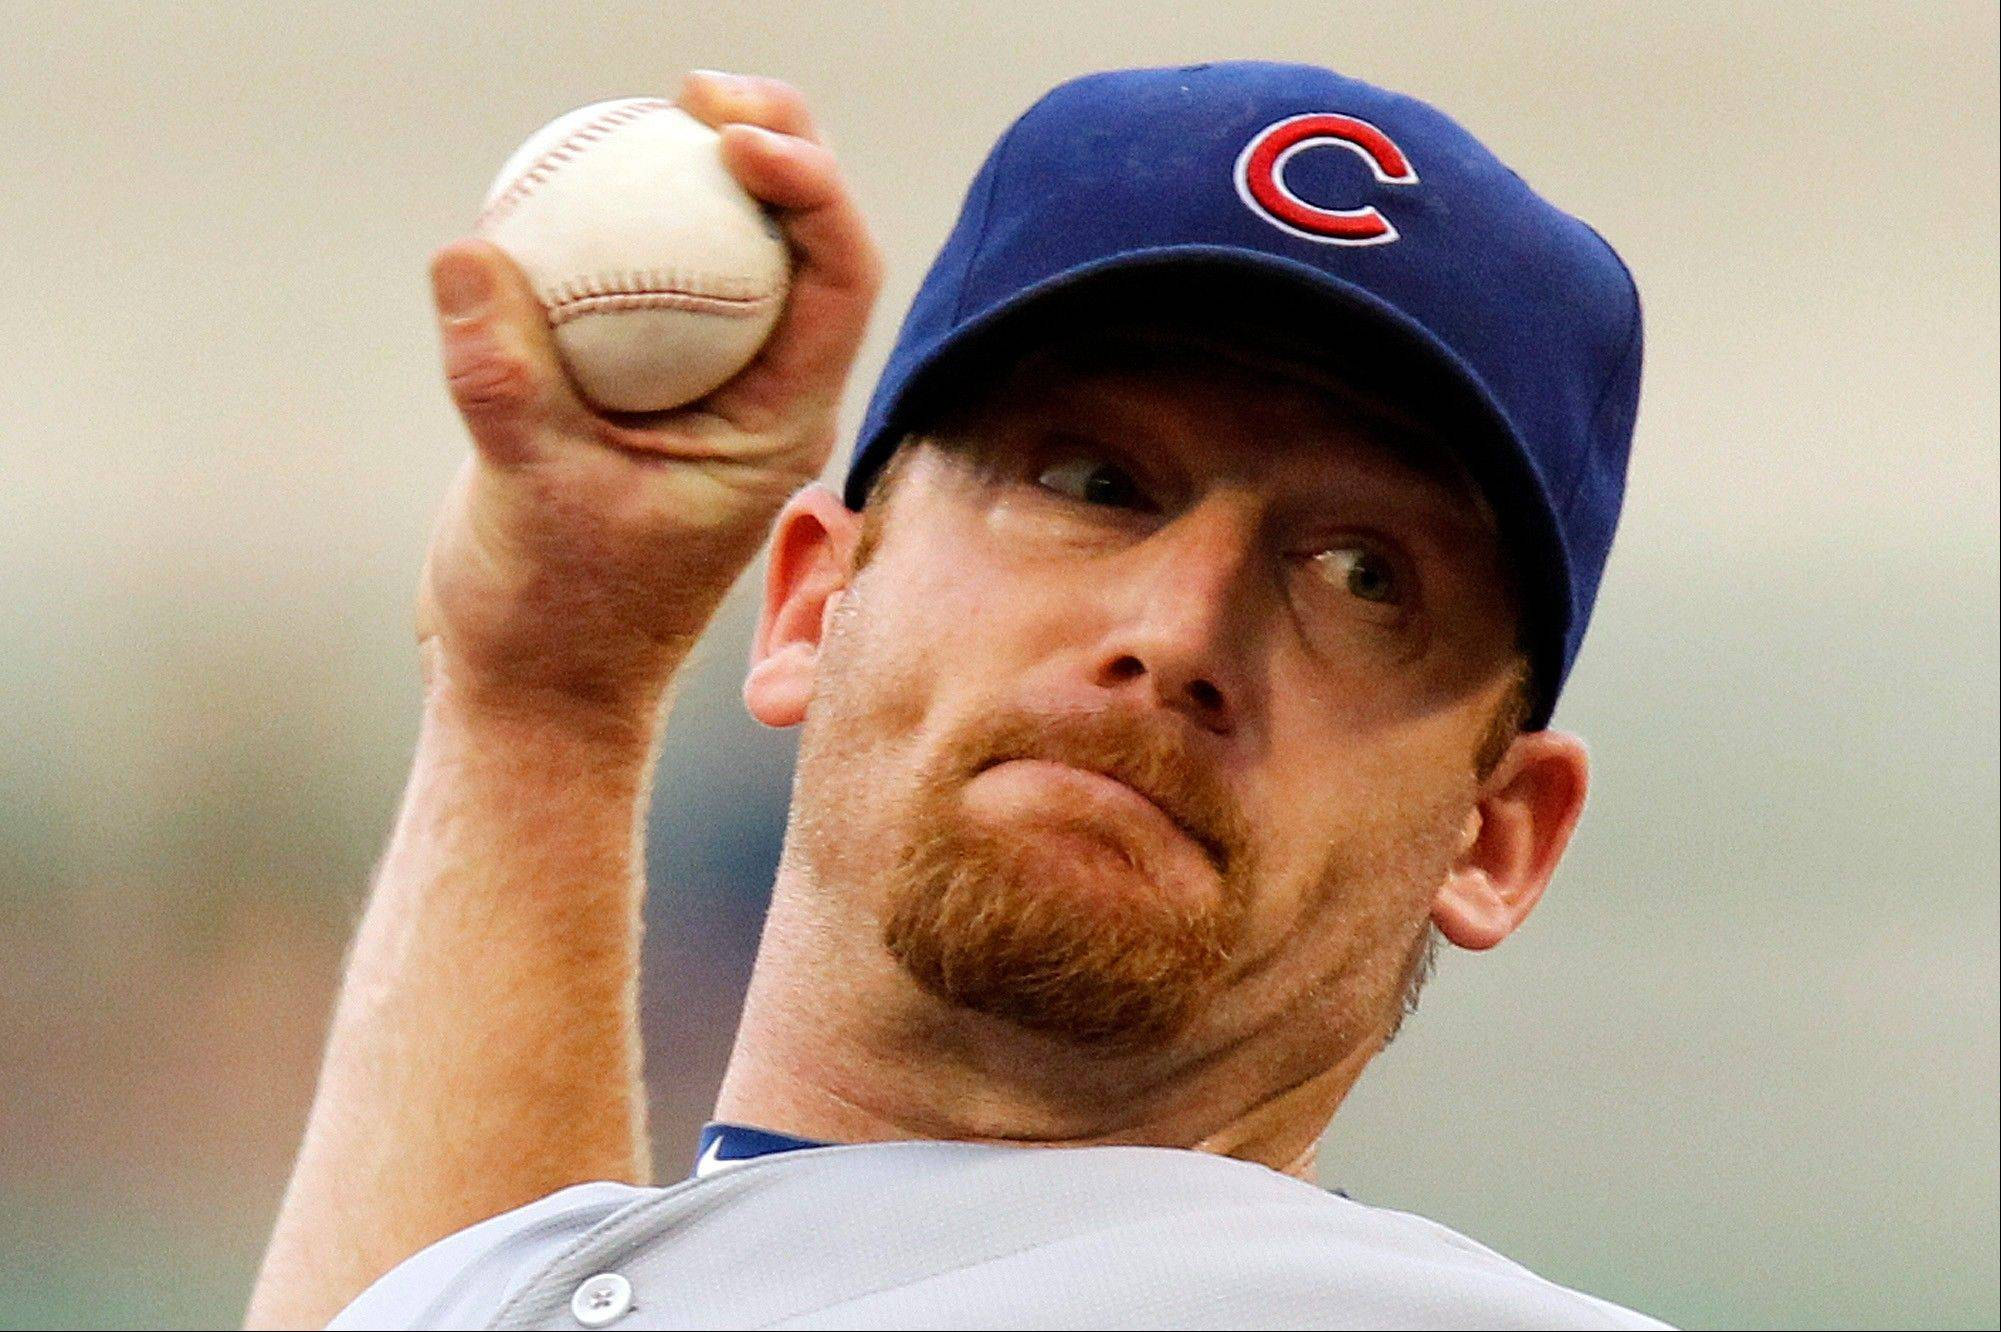 Cubs starter Ryan Dempster wasn�t happy manager Mike Quade pulled him after 5 innings, but the Cubs held on and got the win over the Pittsburgh Pirates, 6-3.